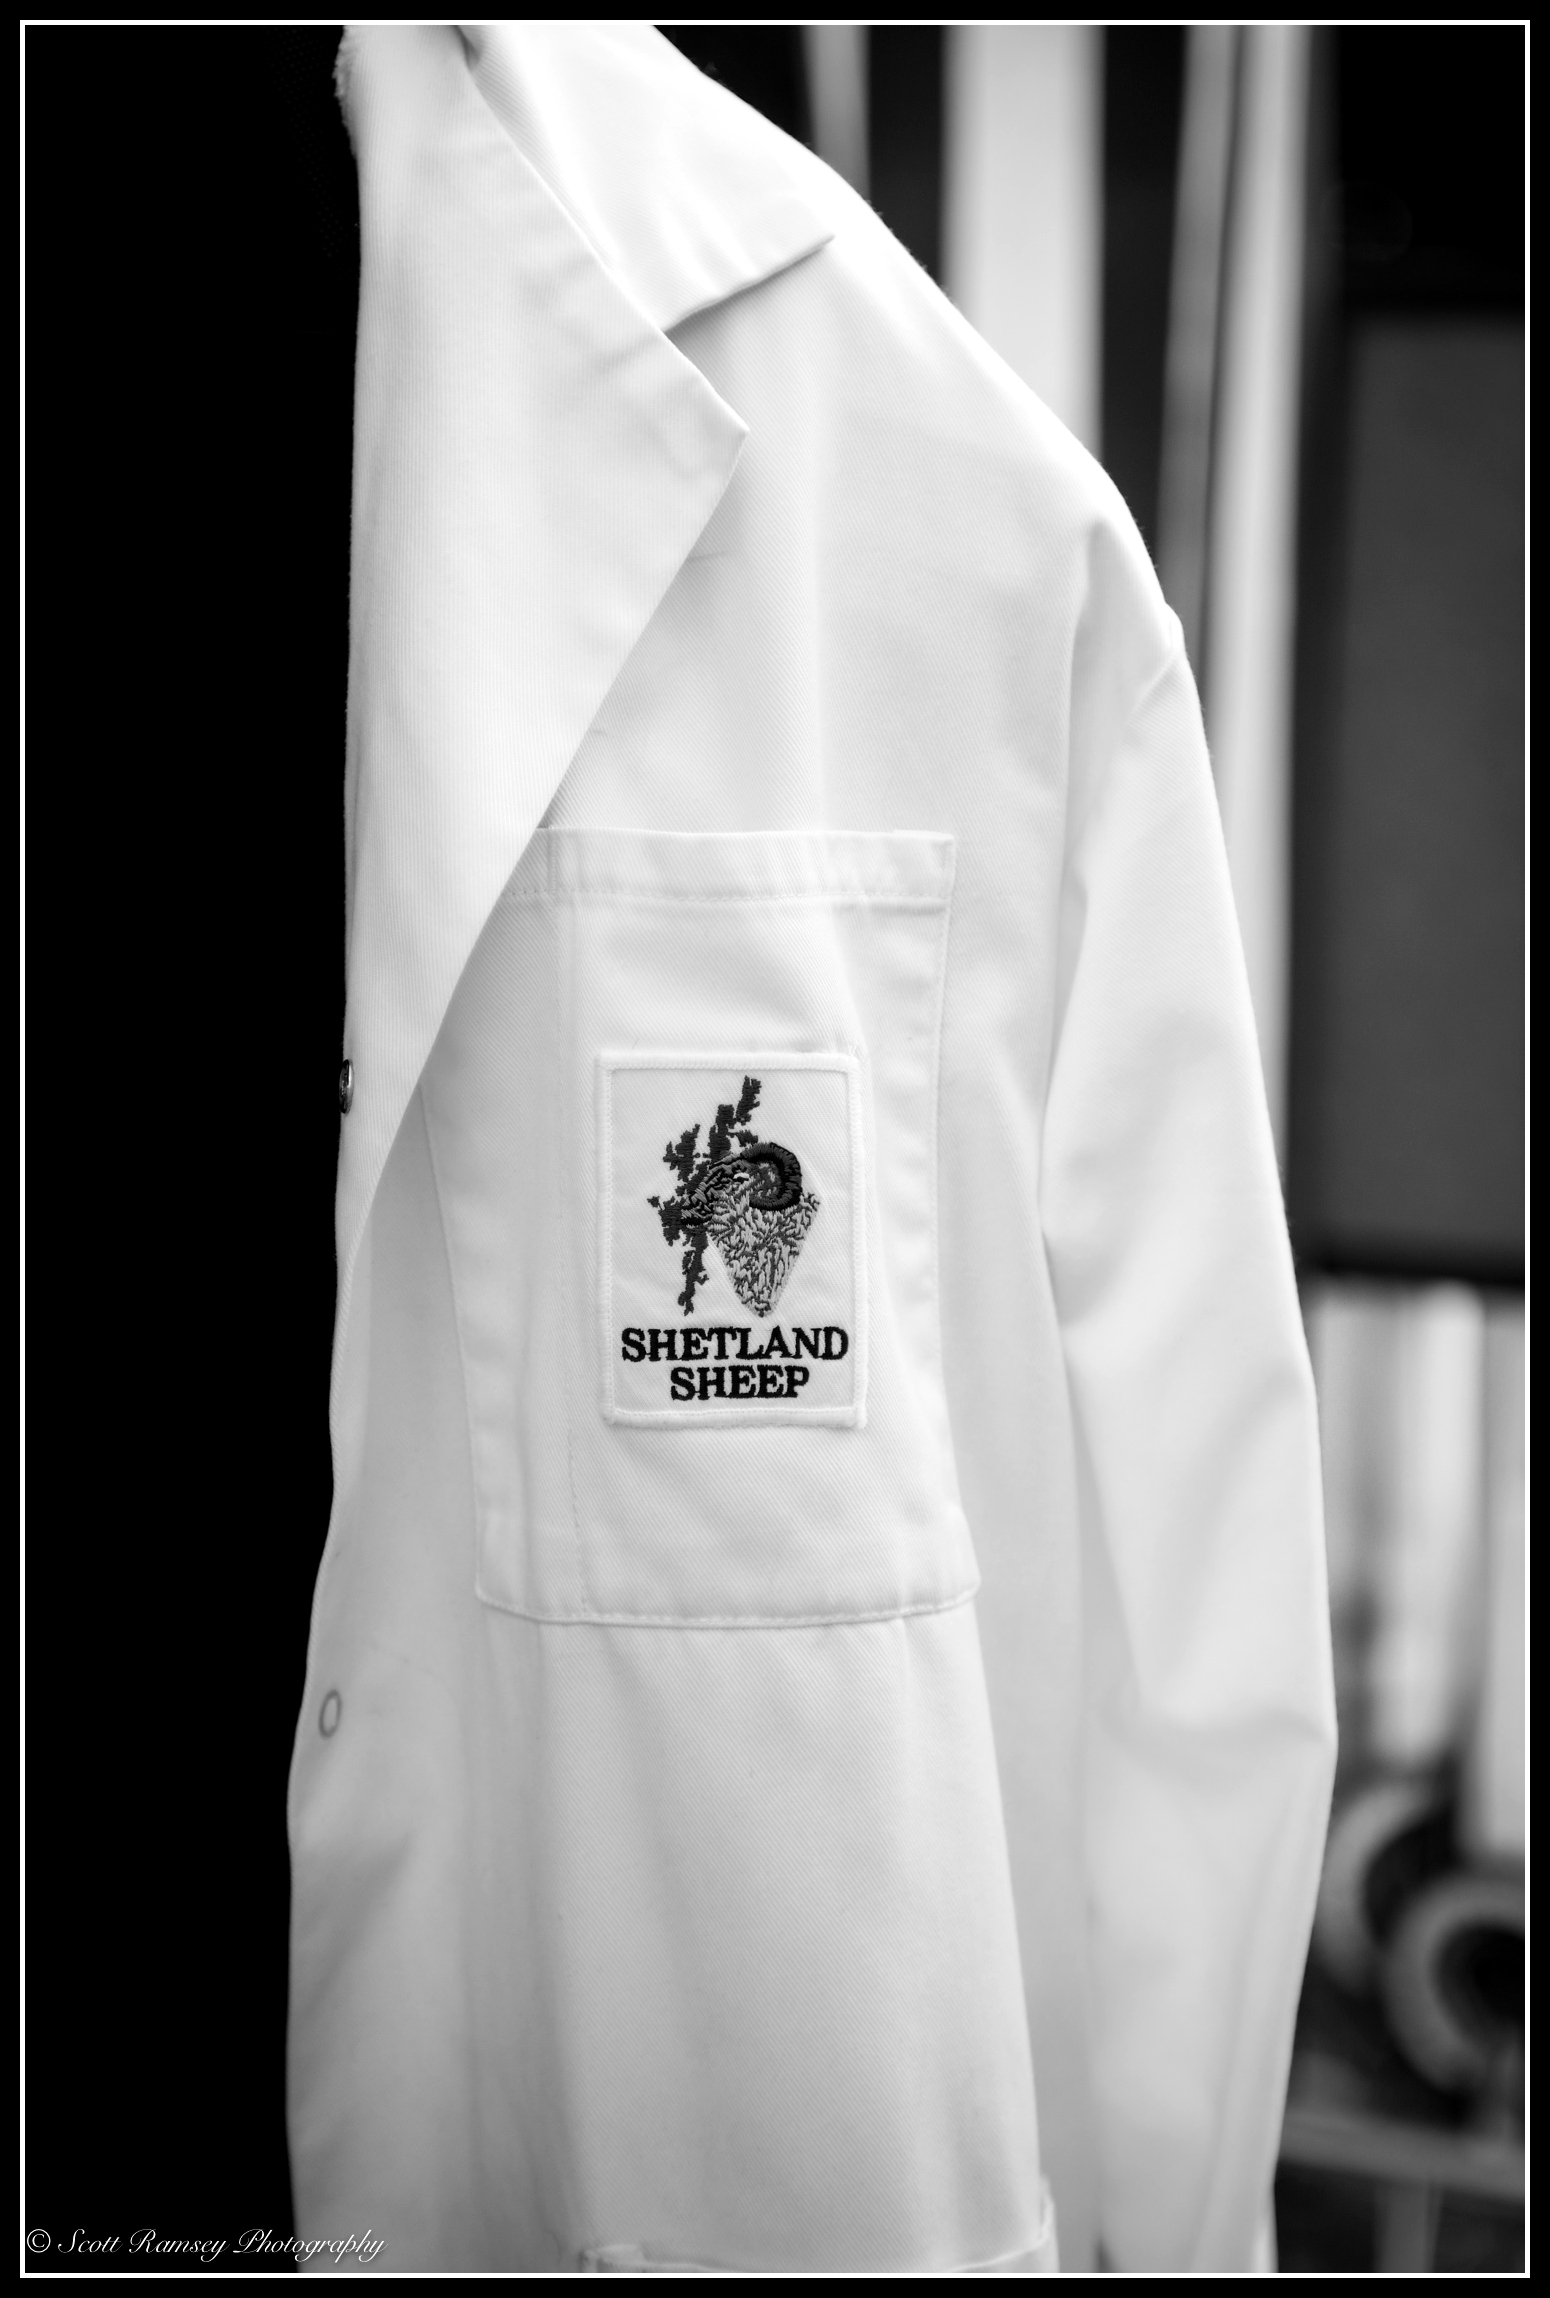 A white coat with a Shetland Sheep badge on it hanging up at the Findon Sheep Fair in West Sussex.